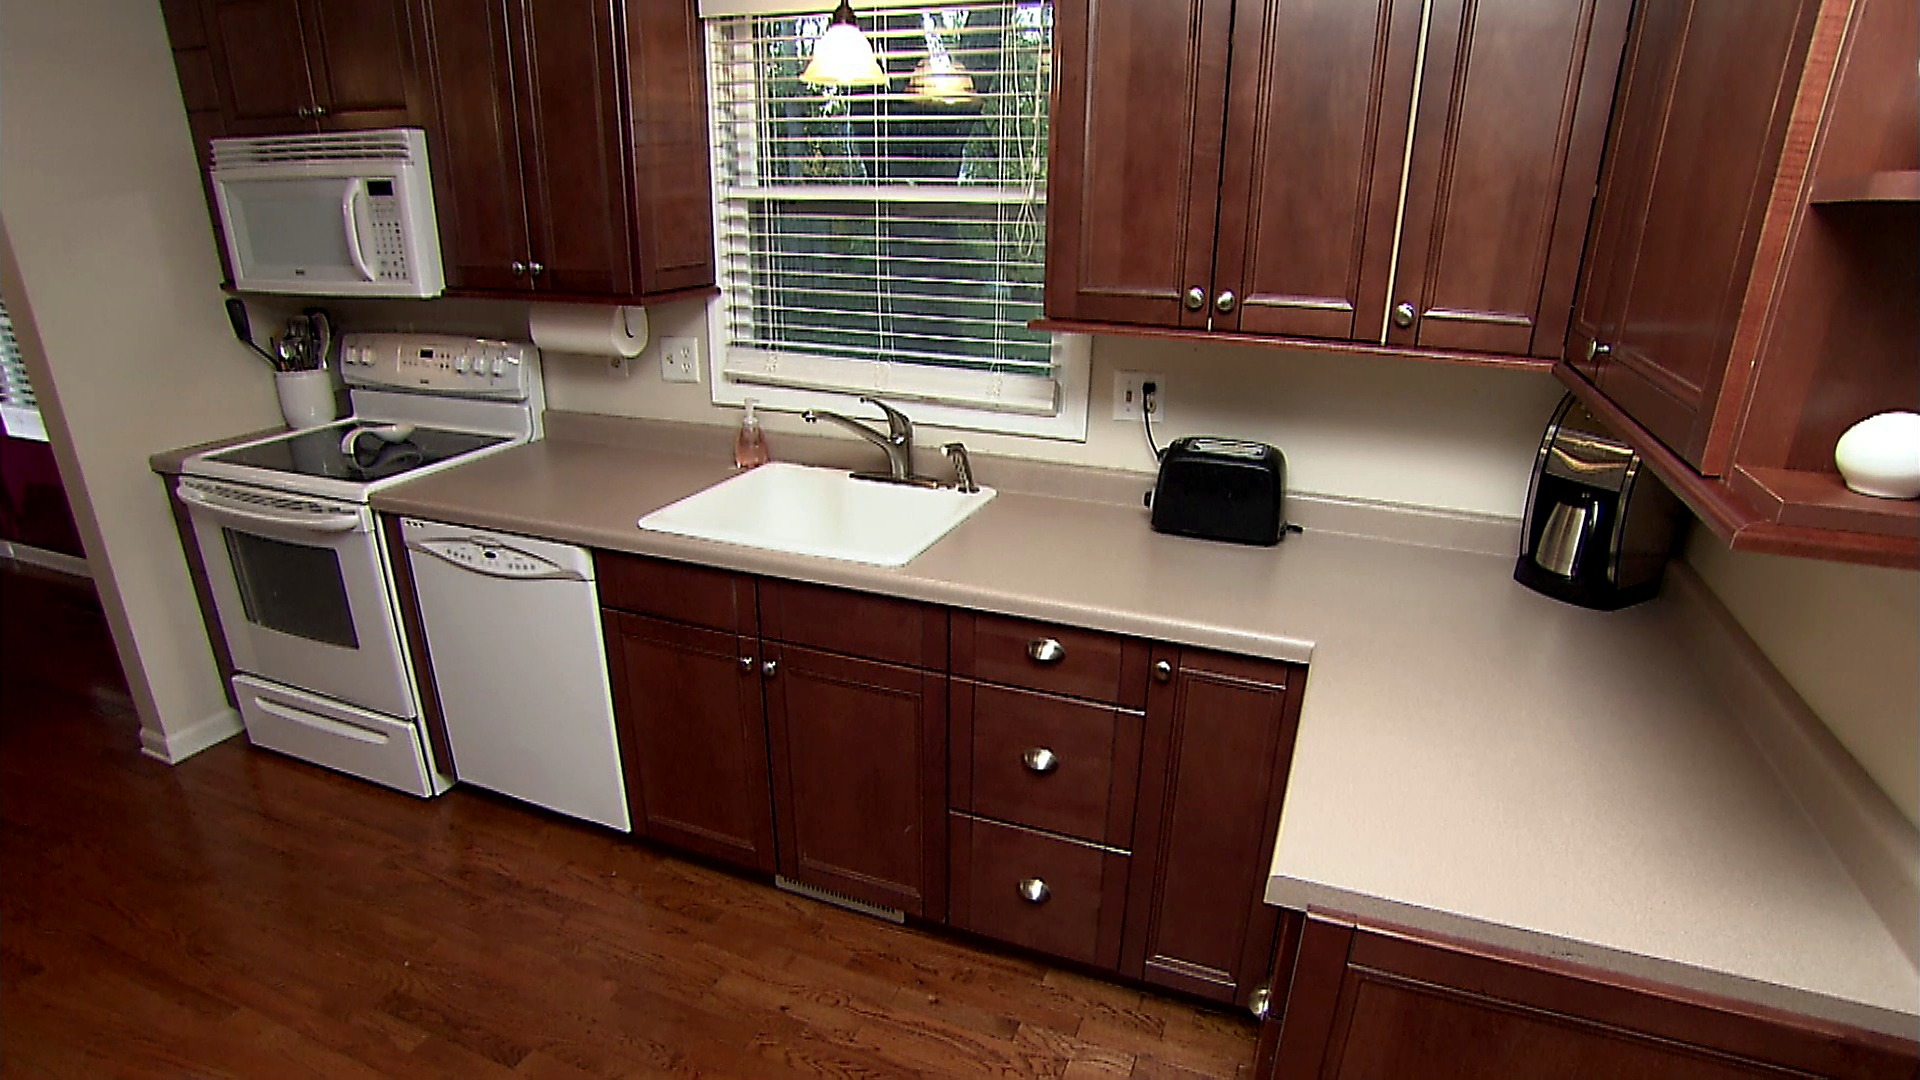 kitchen counter tops kitchen countertop videos UOYPBXM